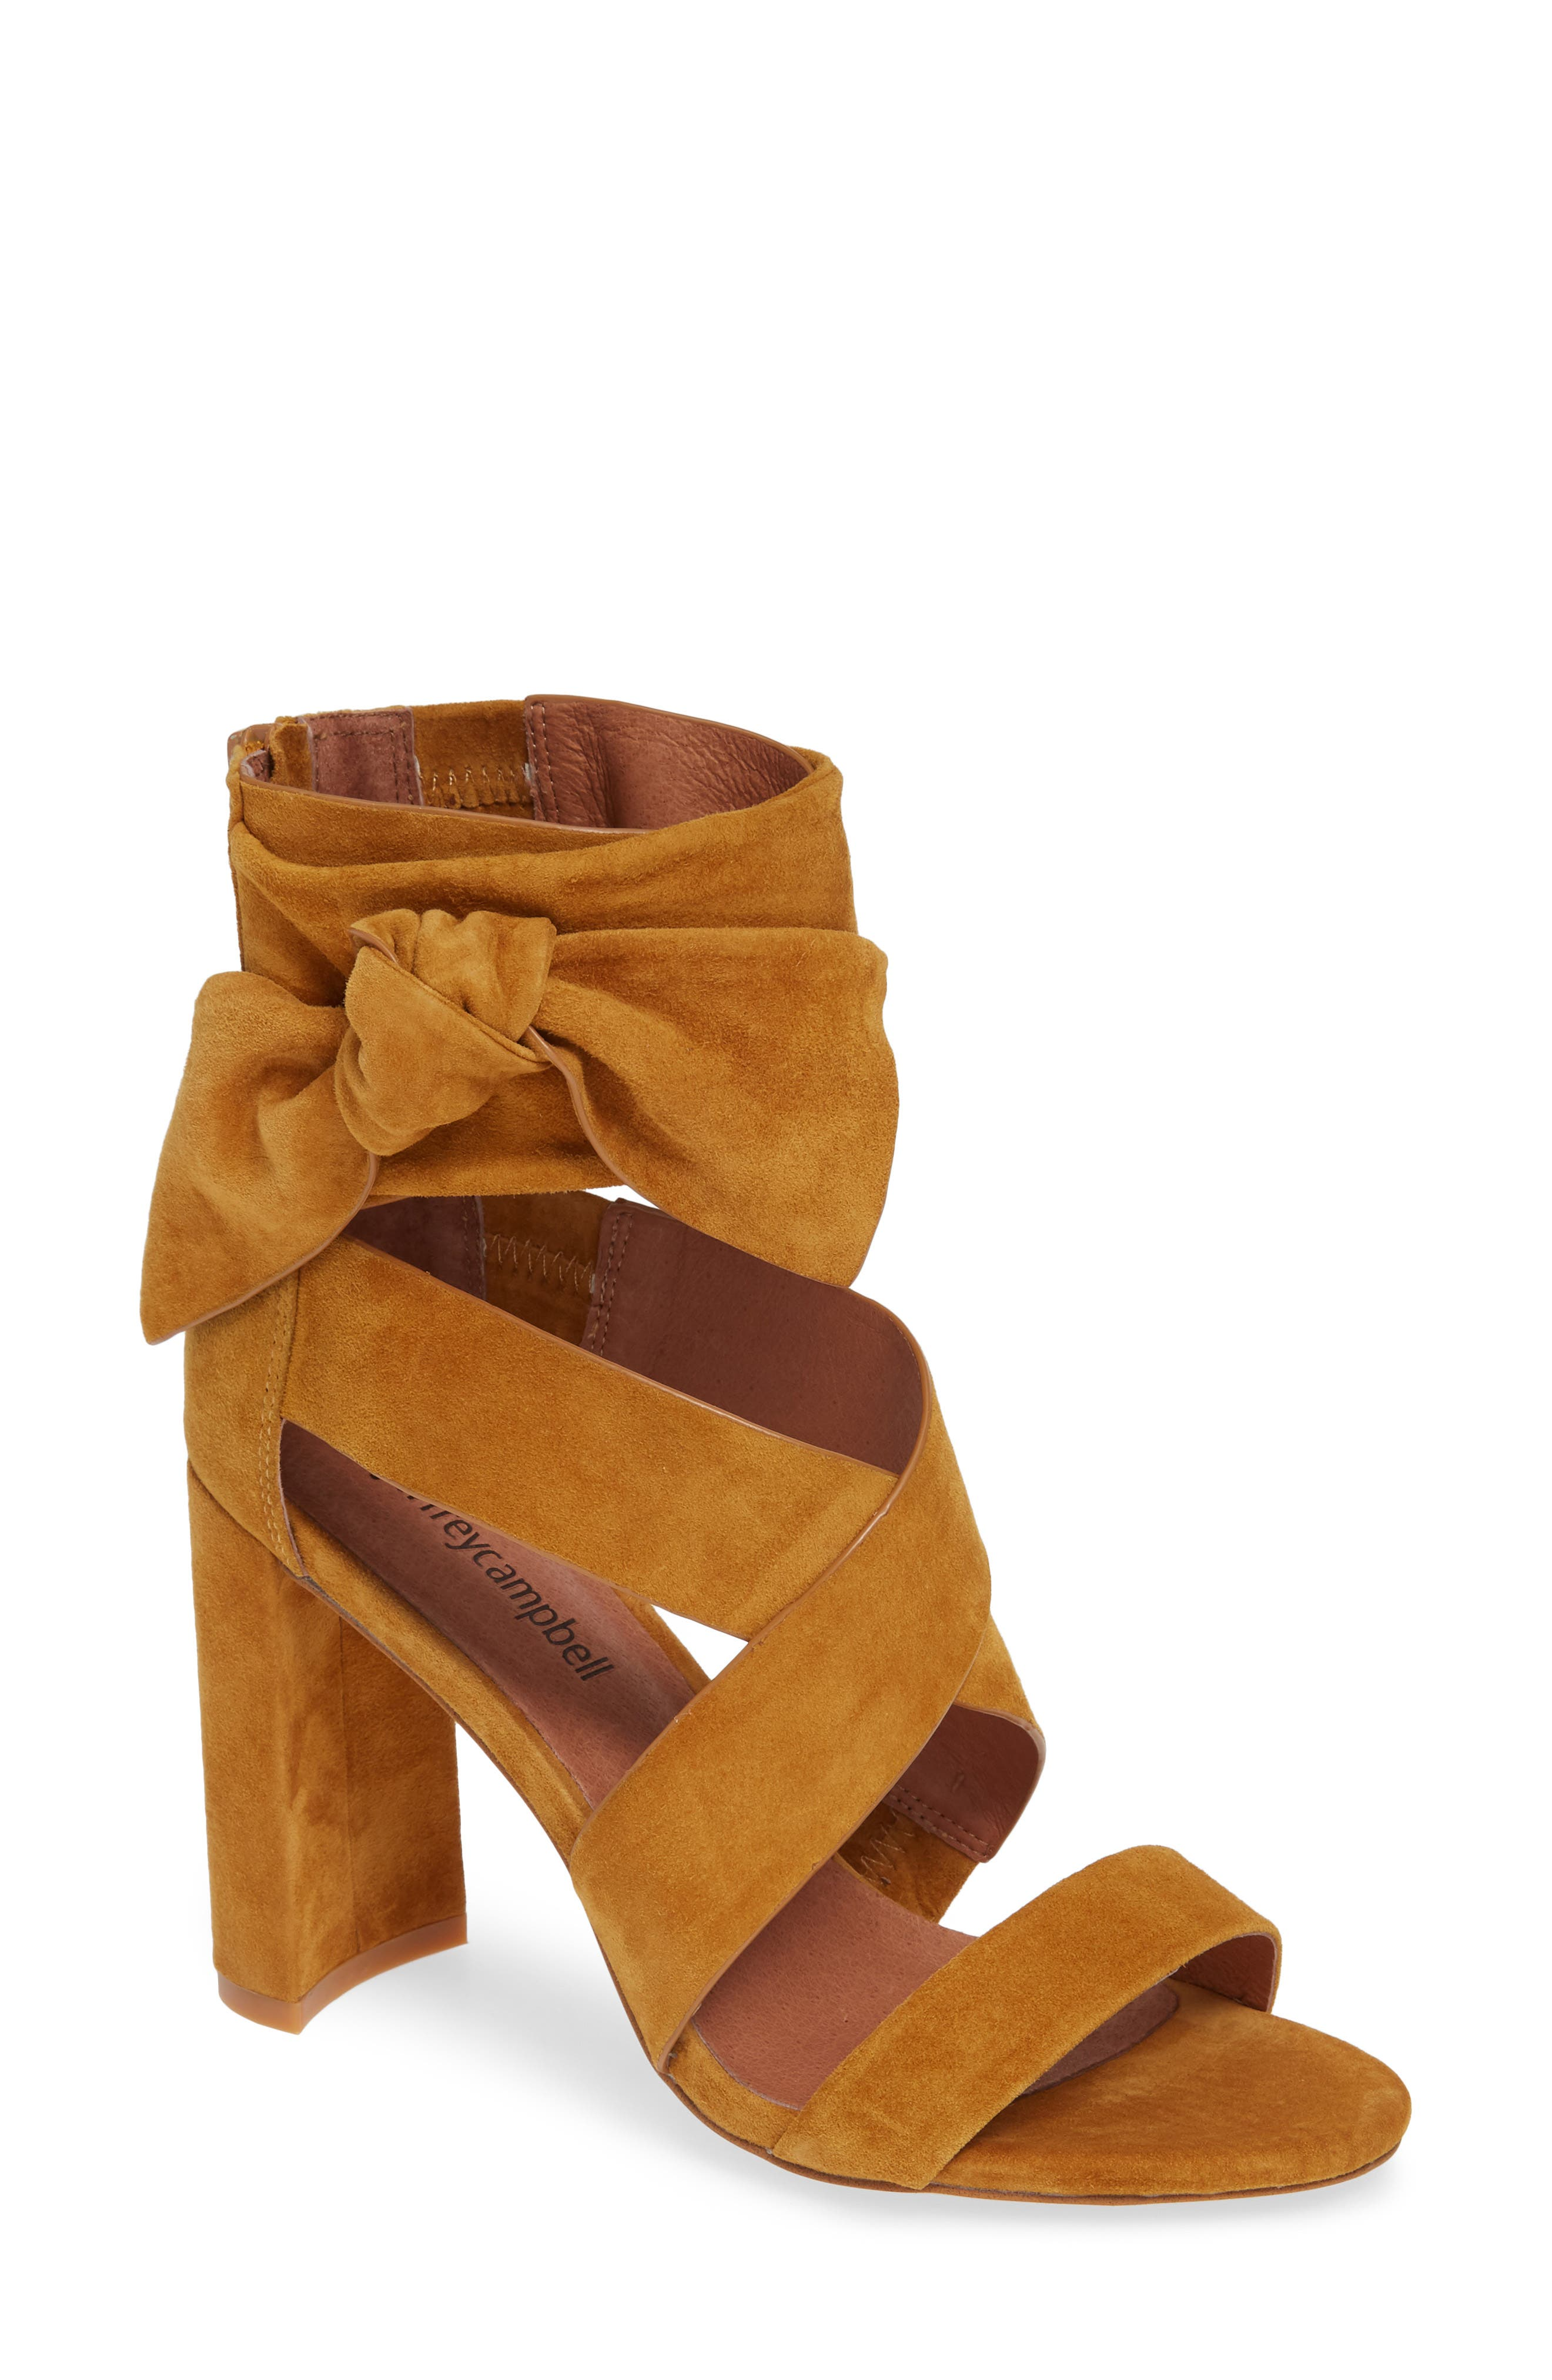 Despoina Sandal,                             Main thumbnail 1, color,                             Mustard Suede Leather